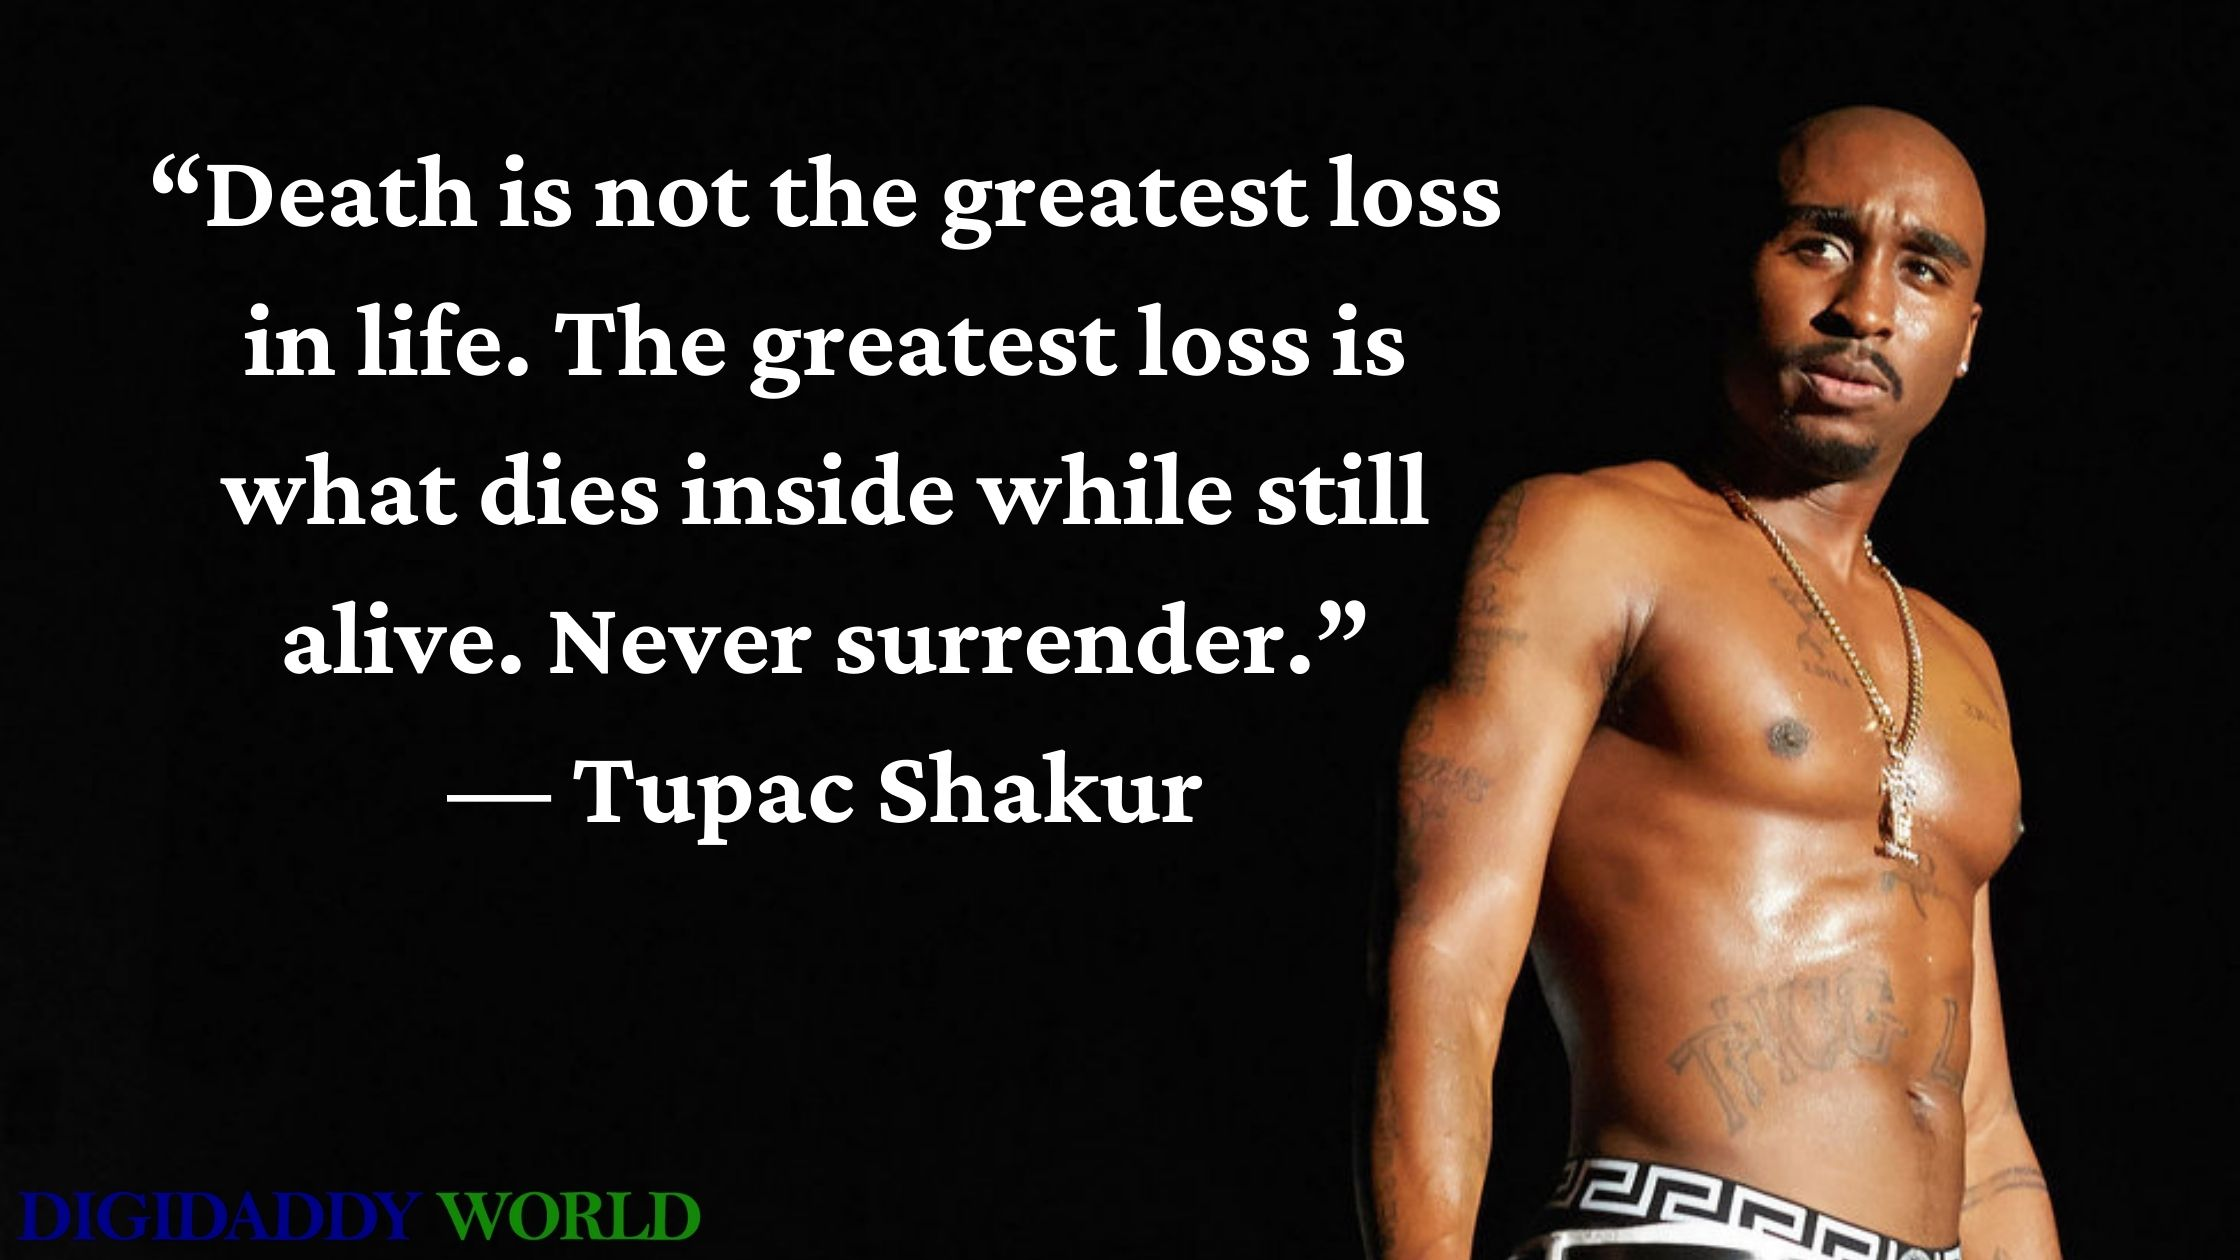 Best Tupac Shakur Quotes About Life and Loyalty